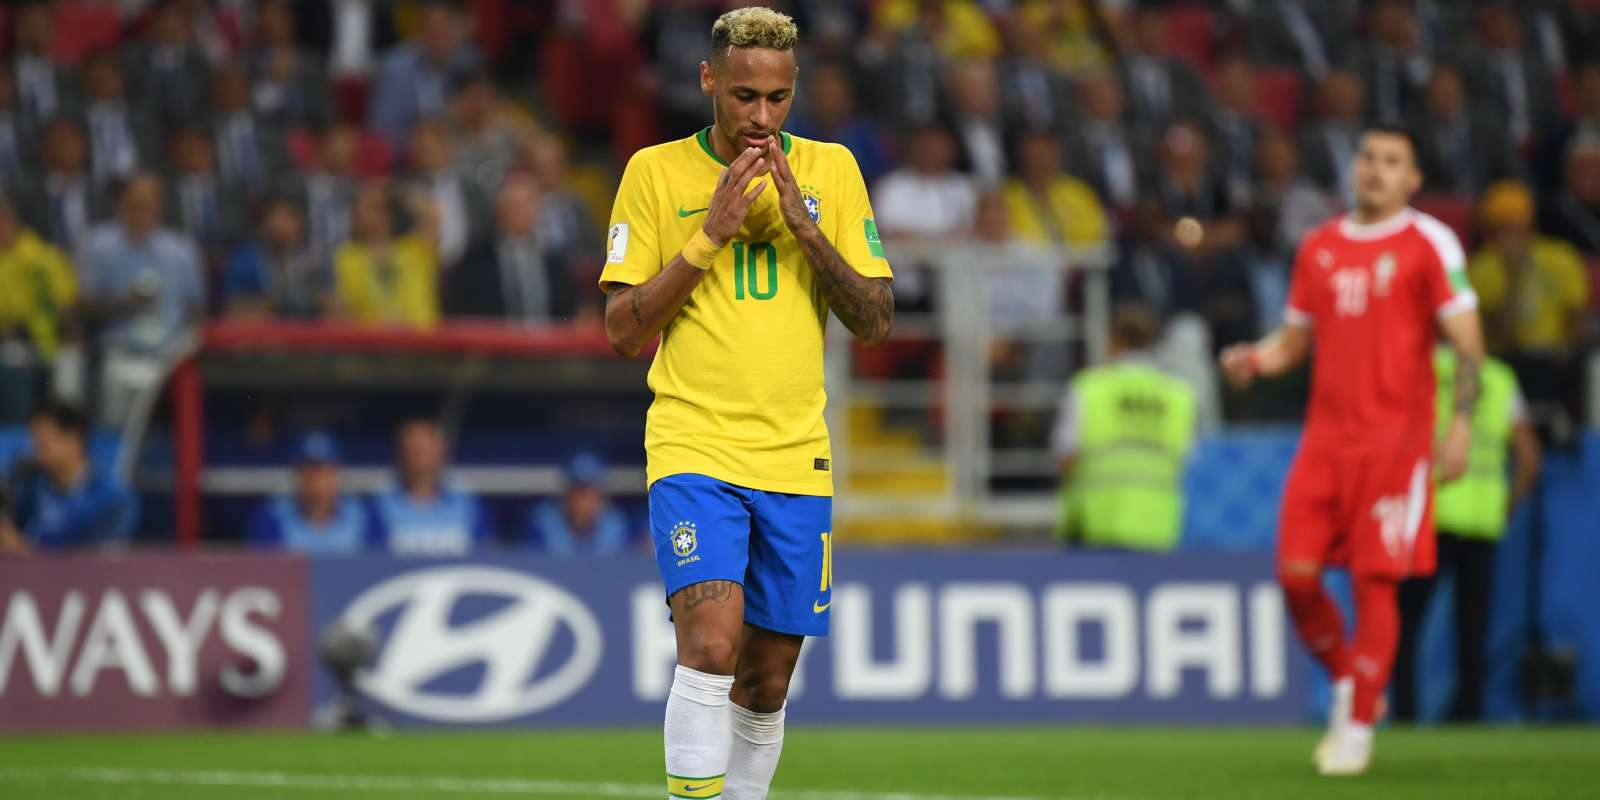 Brazil's forward Neymar reacts during the Russia 2018 World Cup Group E football match between Serbia and Brazil at the Spartak Stadium in Moscow on June 27, 2018. RESTRICTED TO EDITORIAL USE - NO MOBILE PUSH ALERTS/DOWNLOADS / AFP / Kirill KUDRYAVTSEV / RESTRICTED TO EDITORIAL USE - NO MOBILE PUSH ALERTS/DOWNLOADS